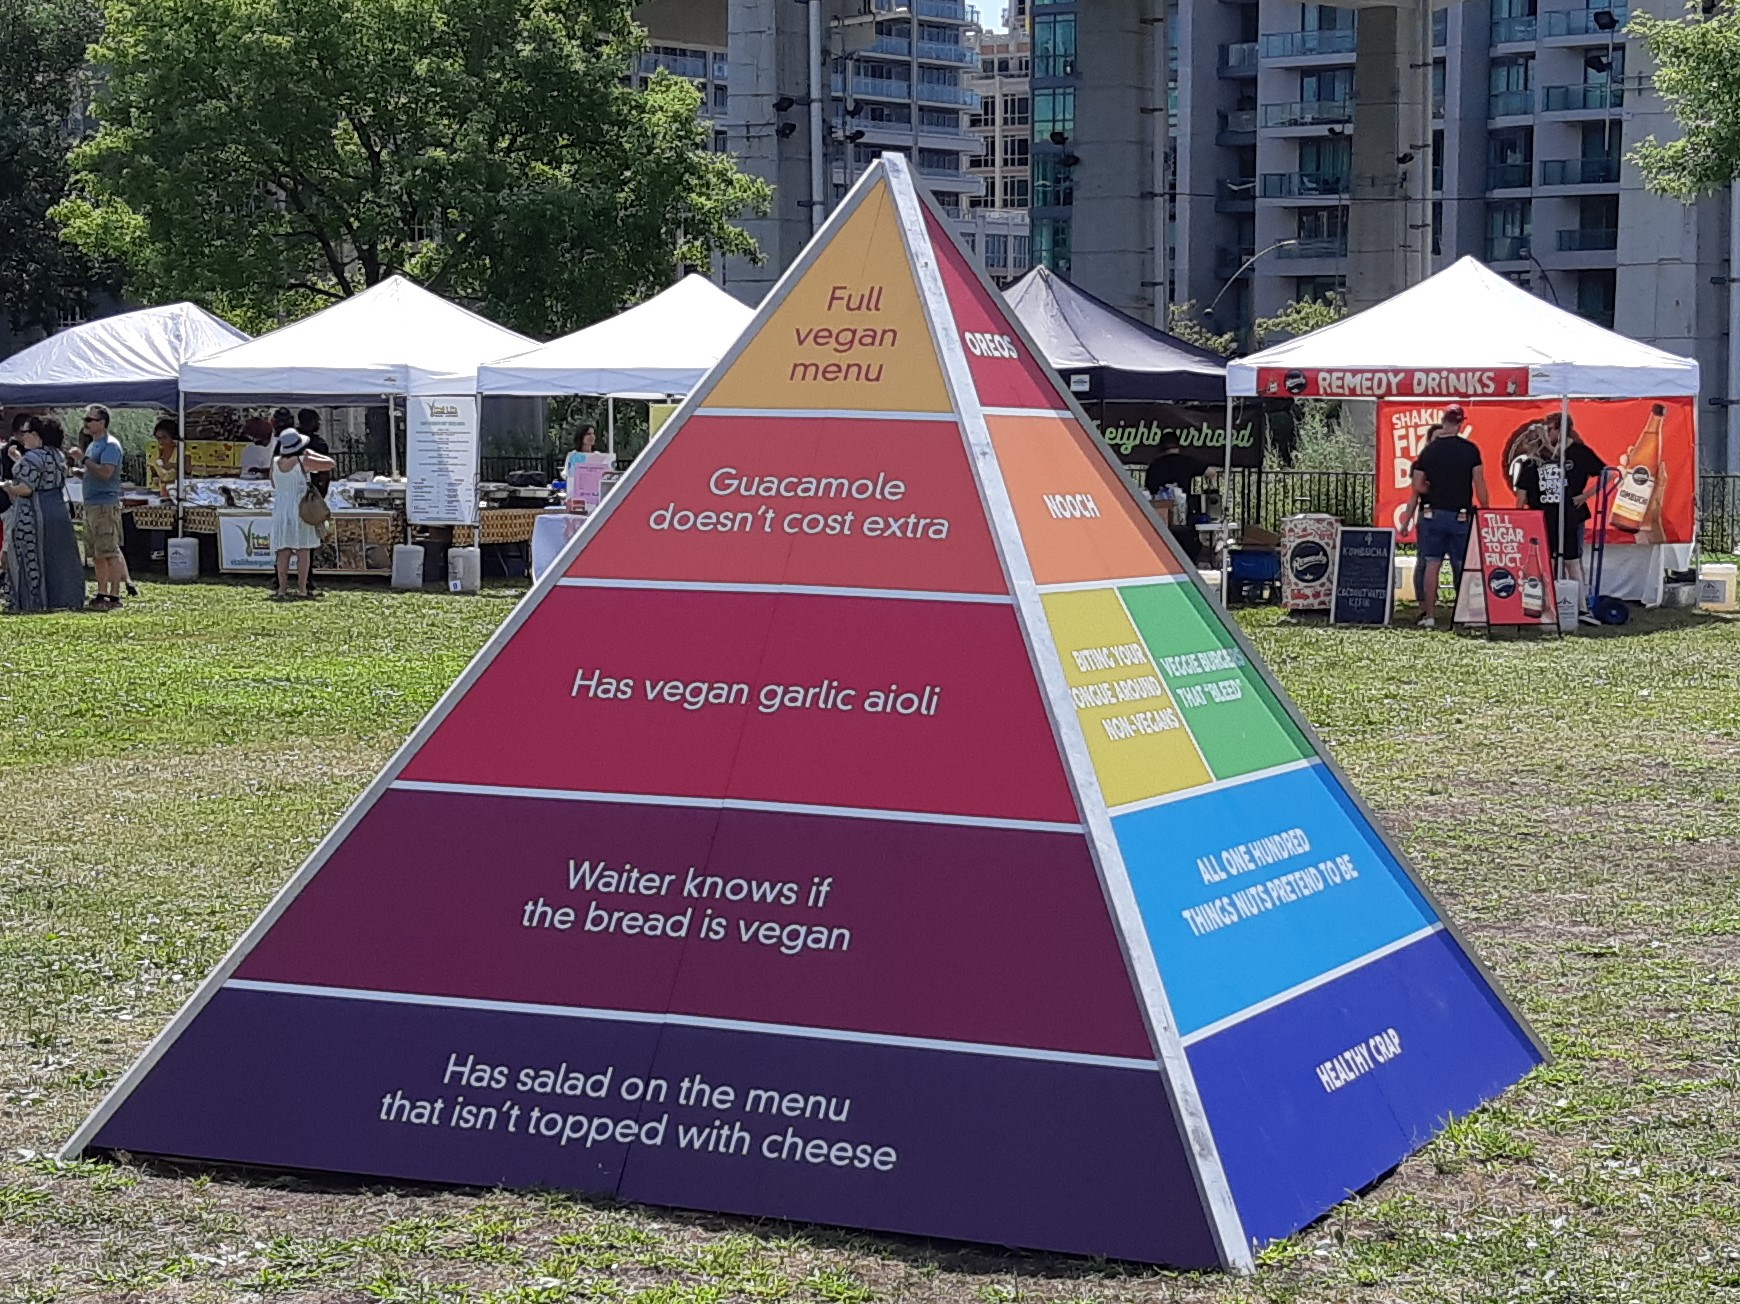 AterImber.com - The Veg Life - Vegandale Festival 2019 Review - Vegan Pyramid